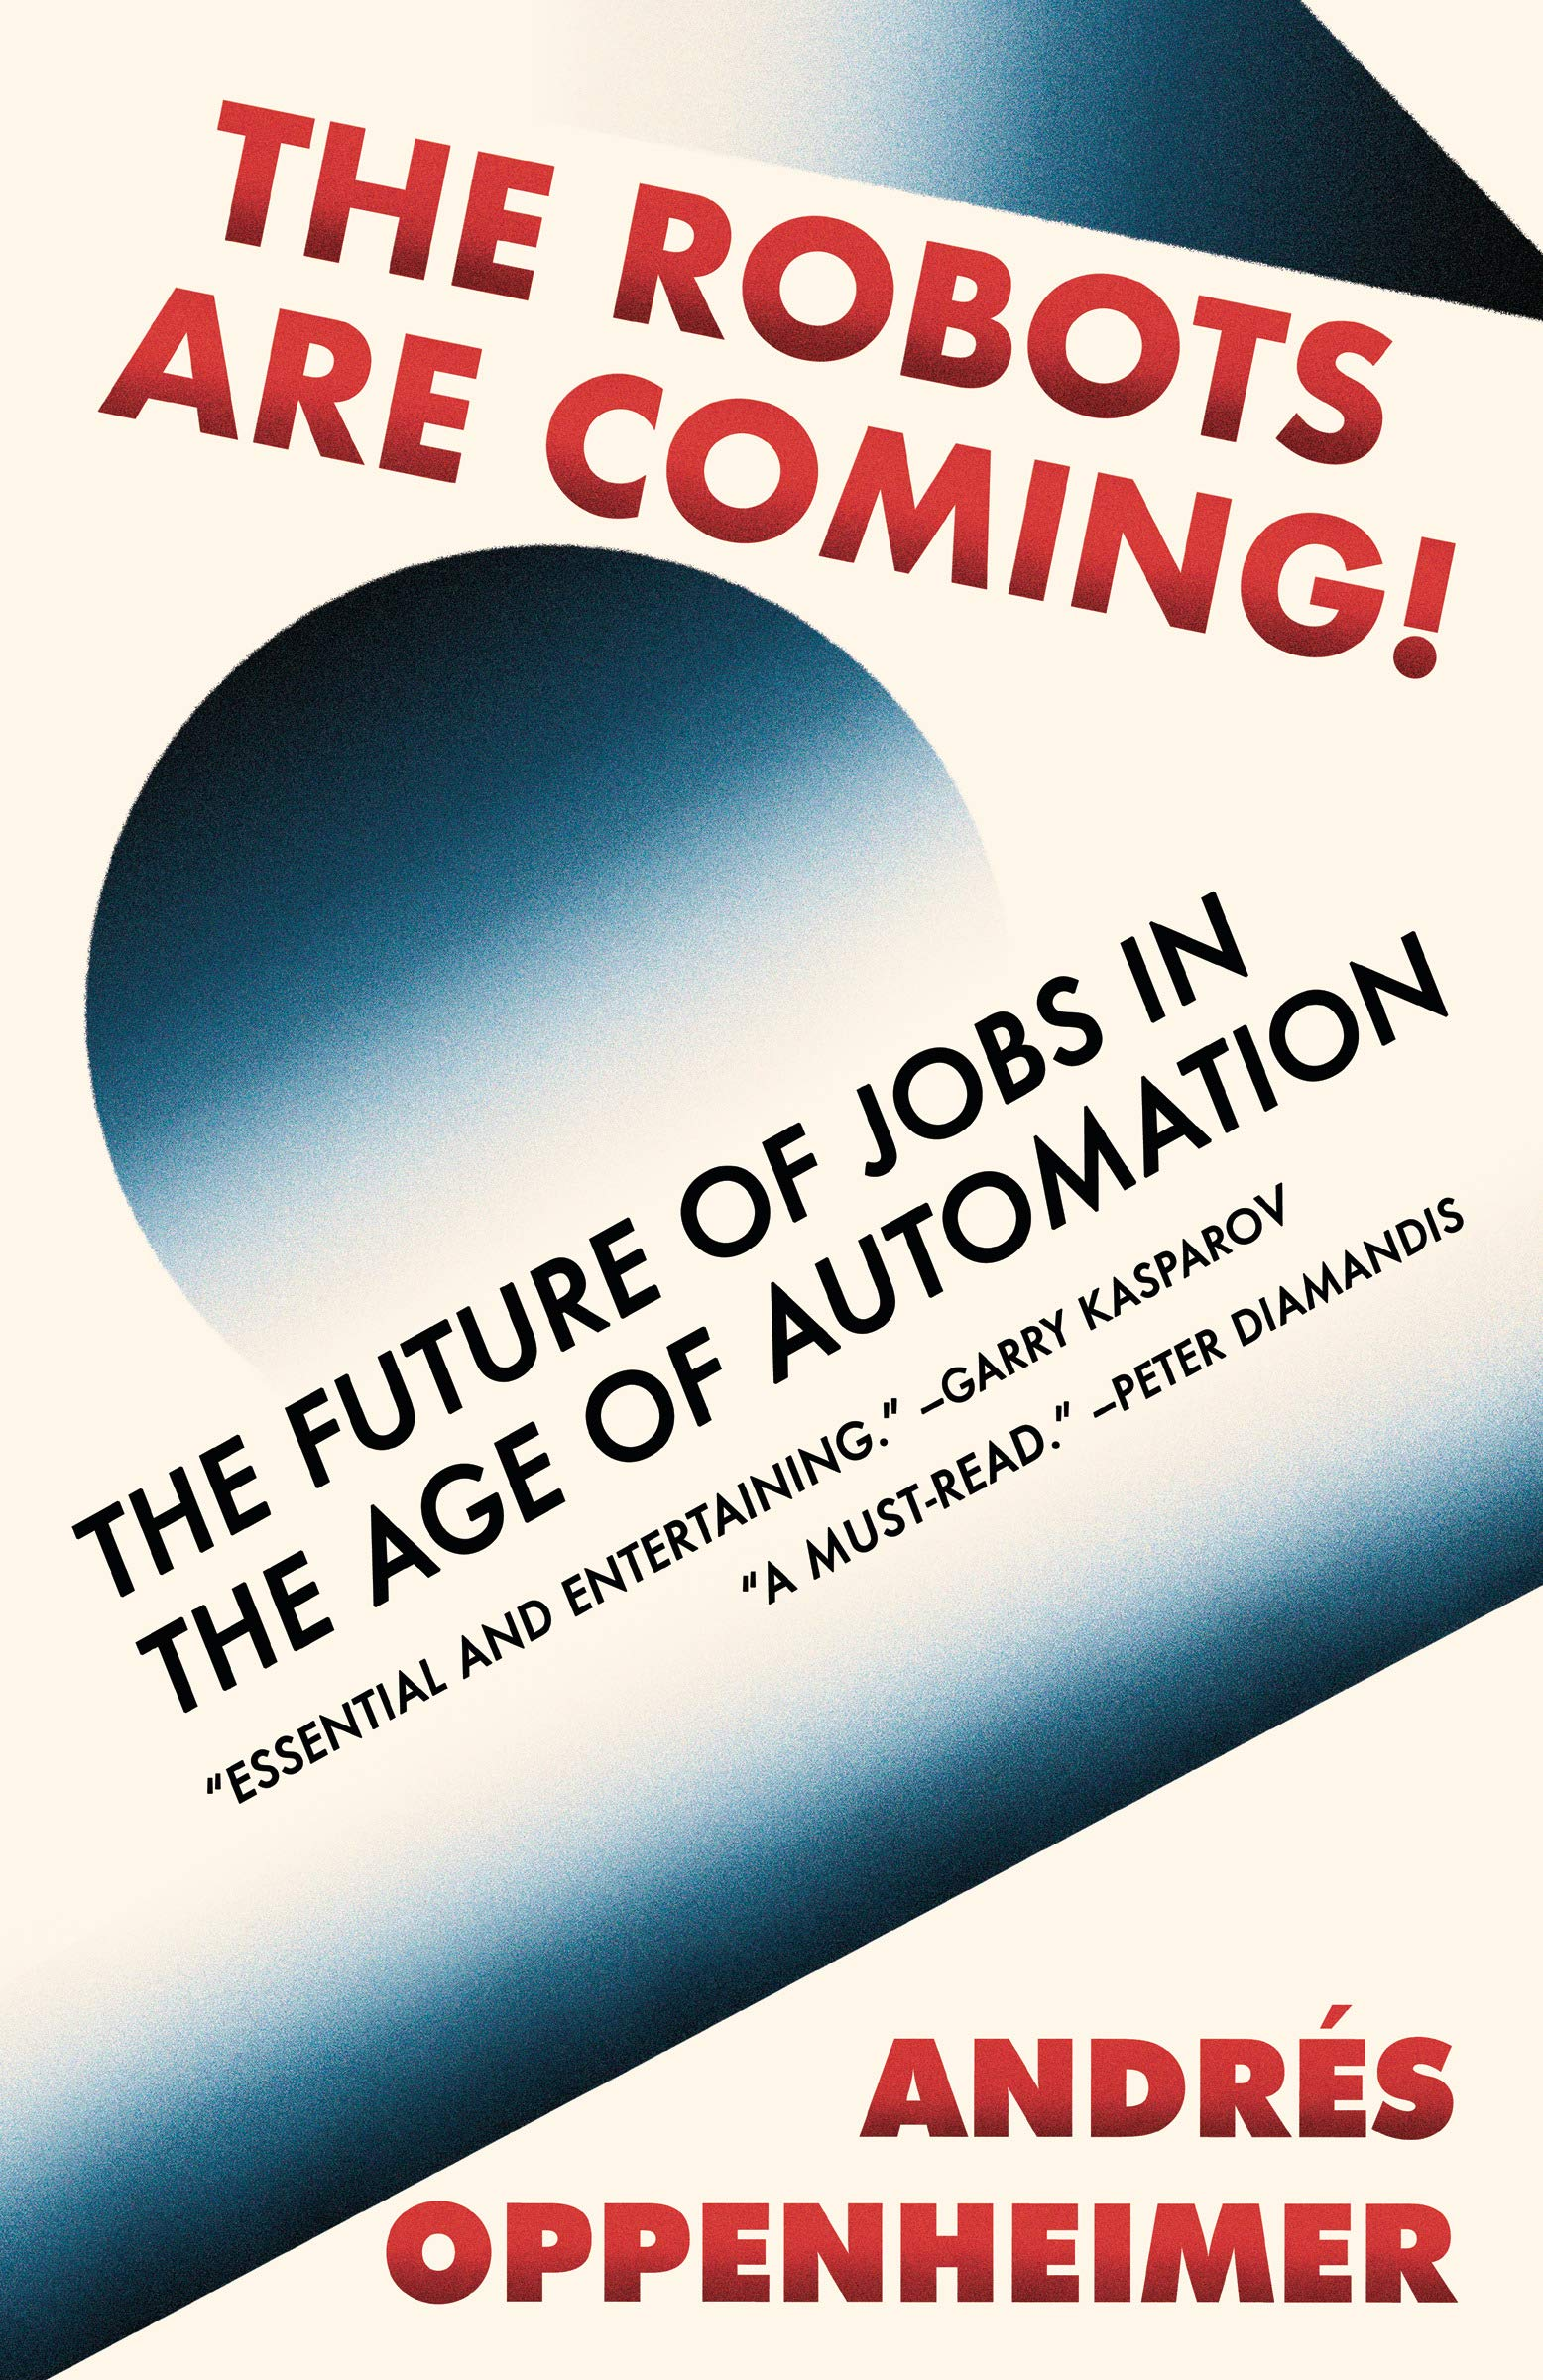 The Robots Are Coming!: The Future of Jobs in the Age of